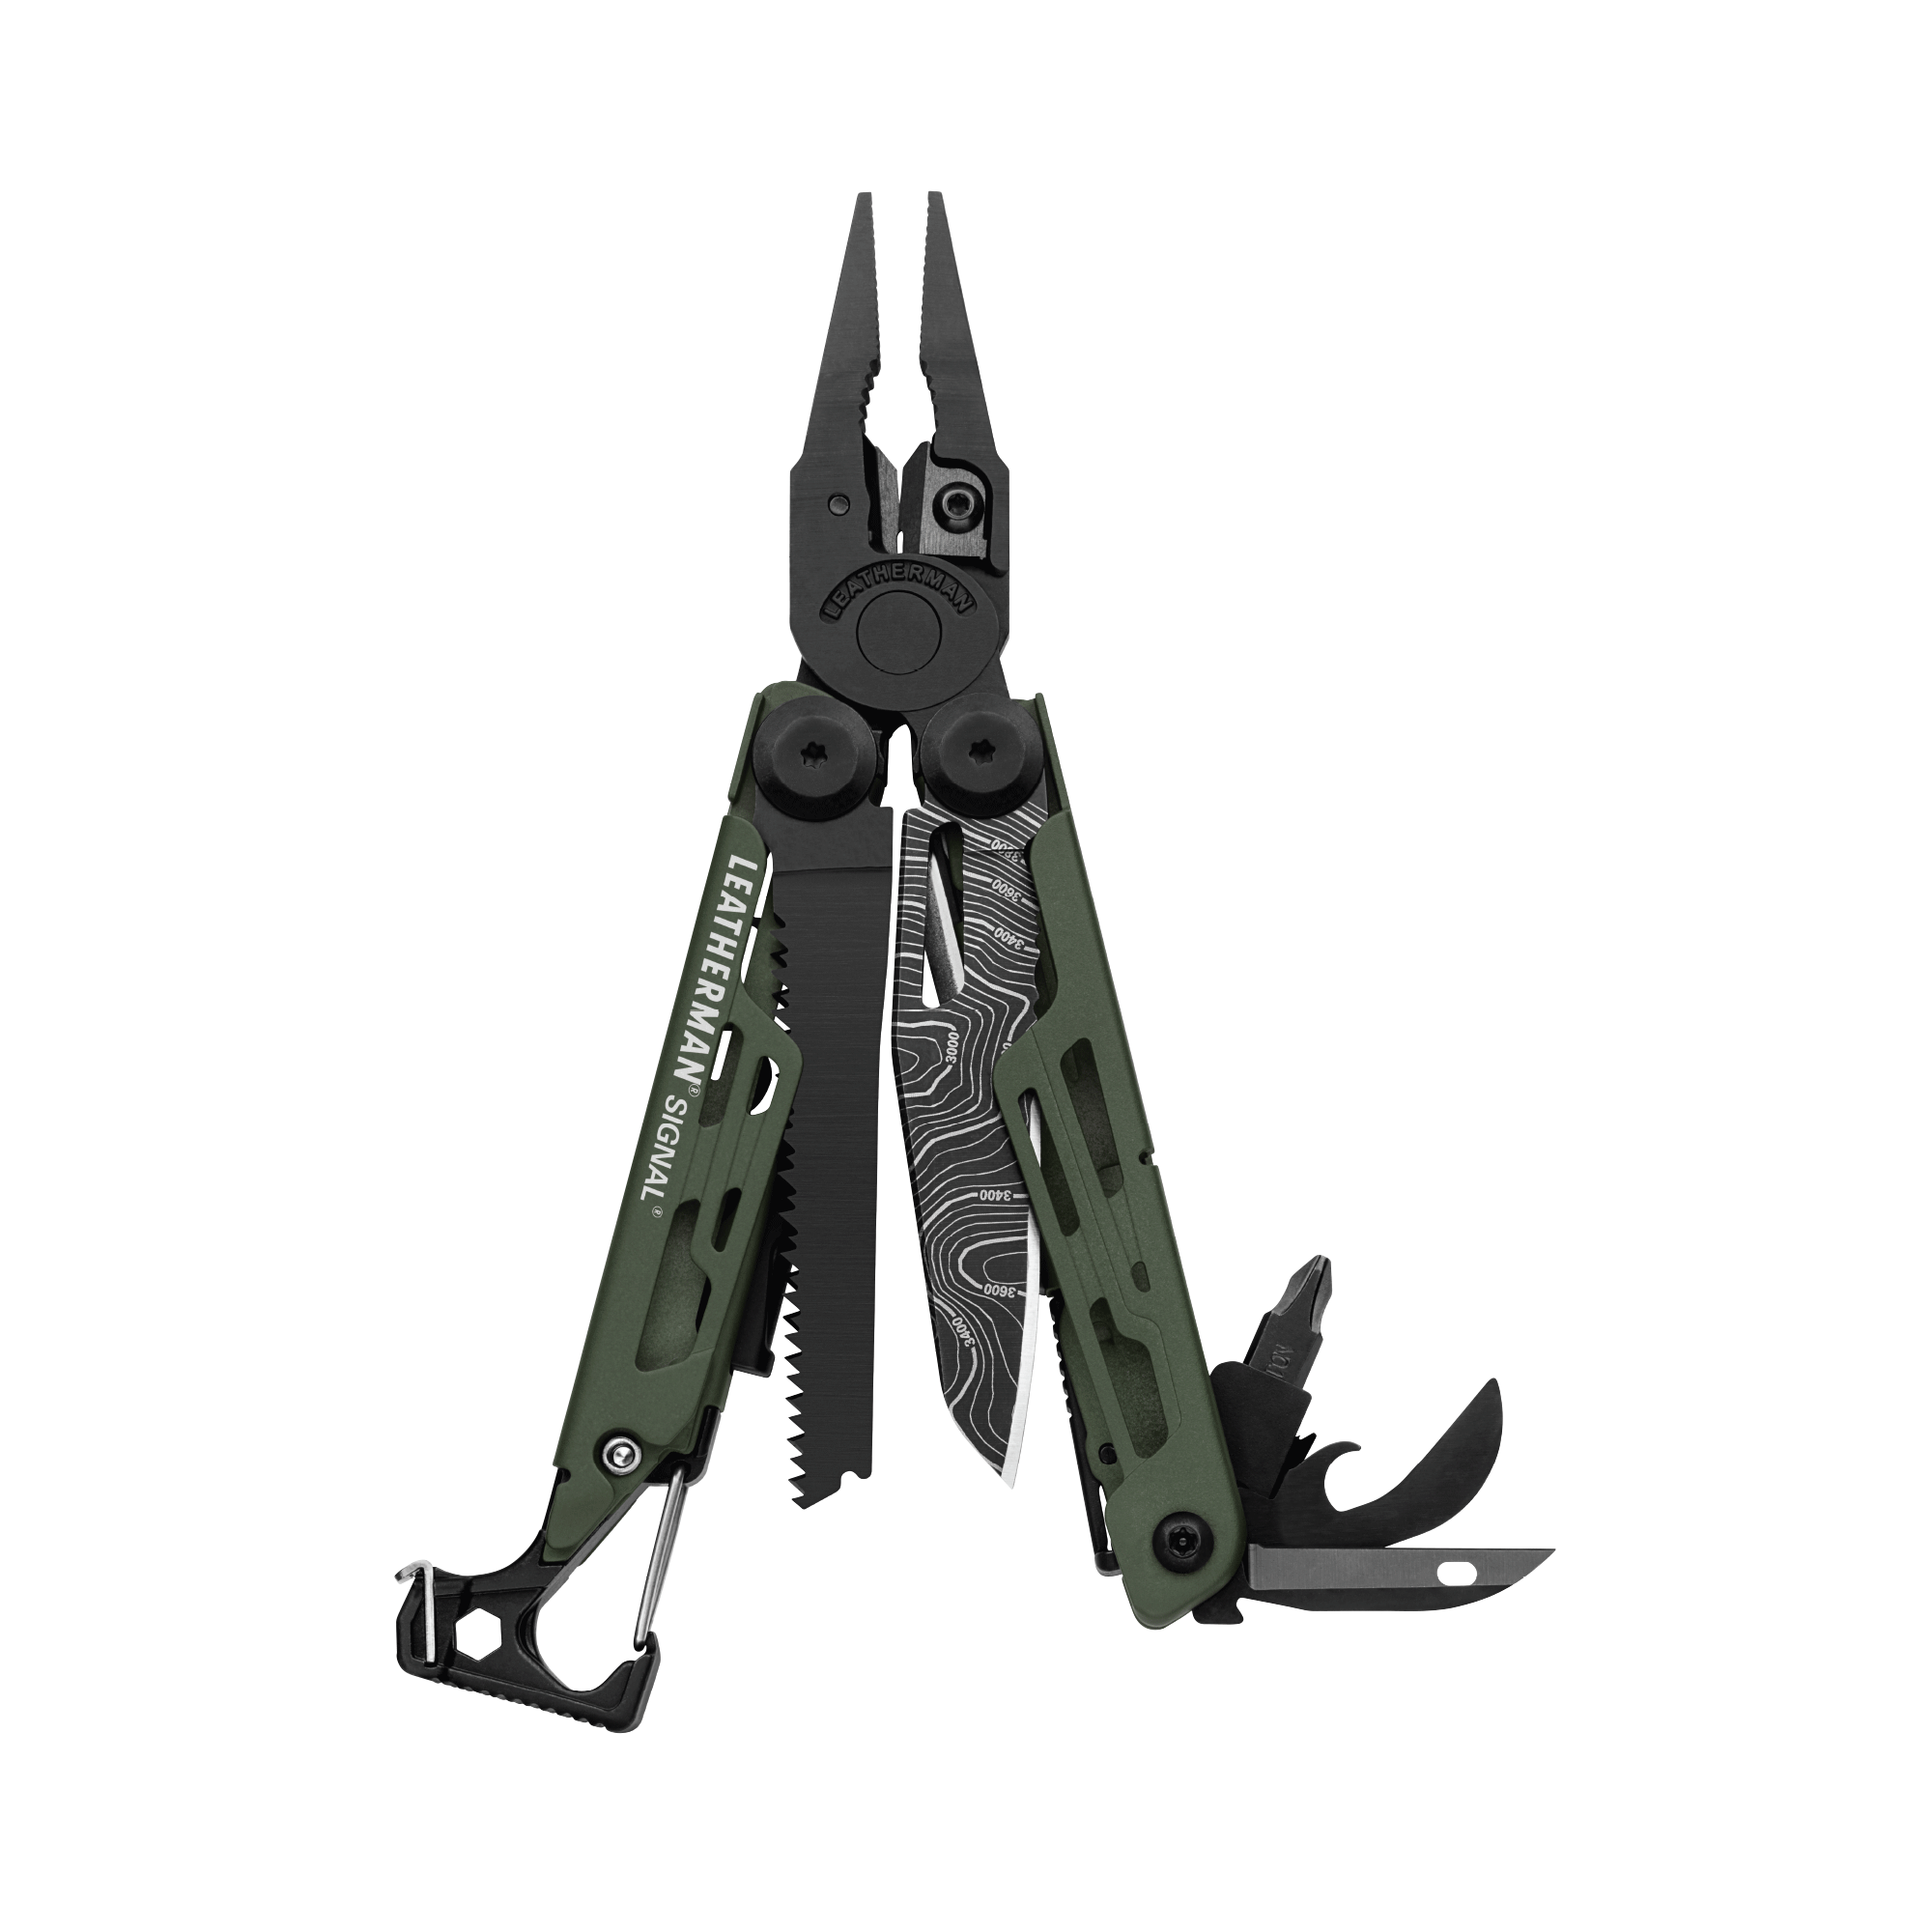 Leatherman signal multi-tool, green, fanned view, 19 tools